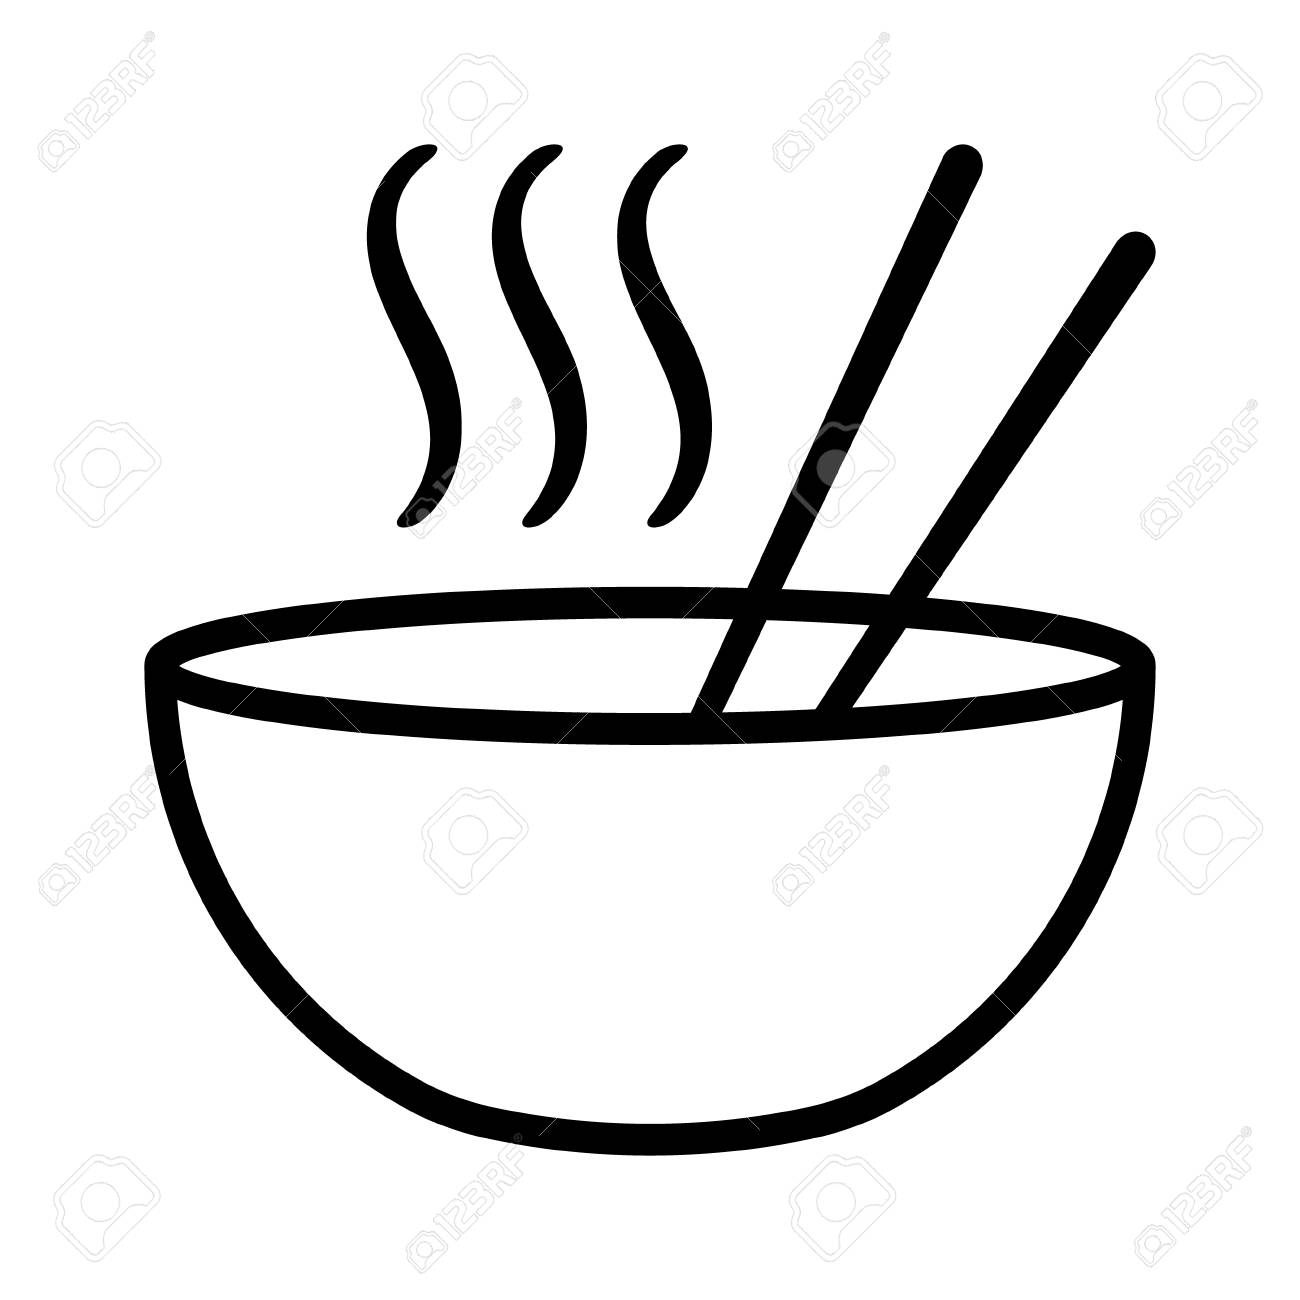 Hot Ramen Or Pho Noodle Soup Bowl With Chopsticks And Smoke Flat Royalty Free Cliparts Vectors And Stock Illustration Image 114860591